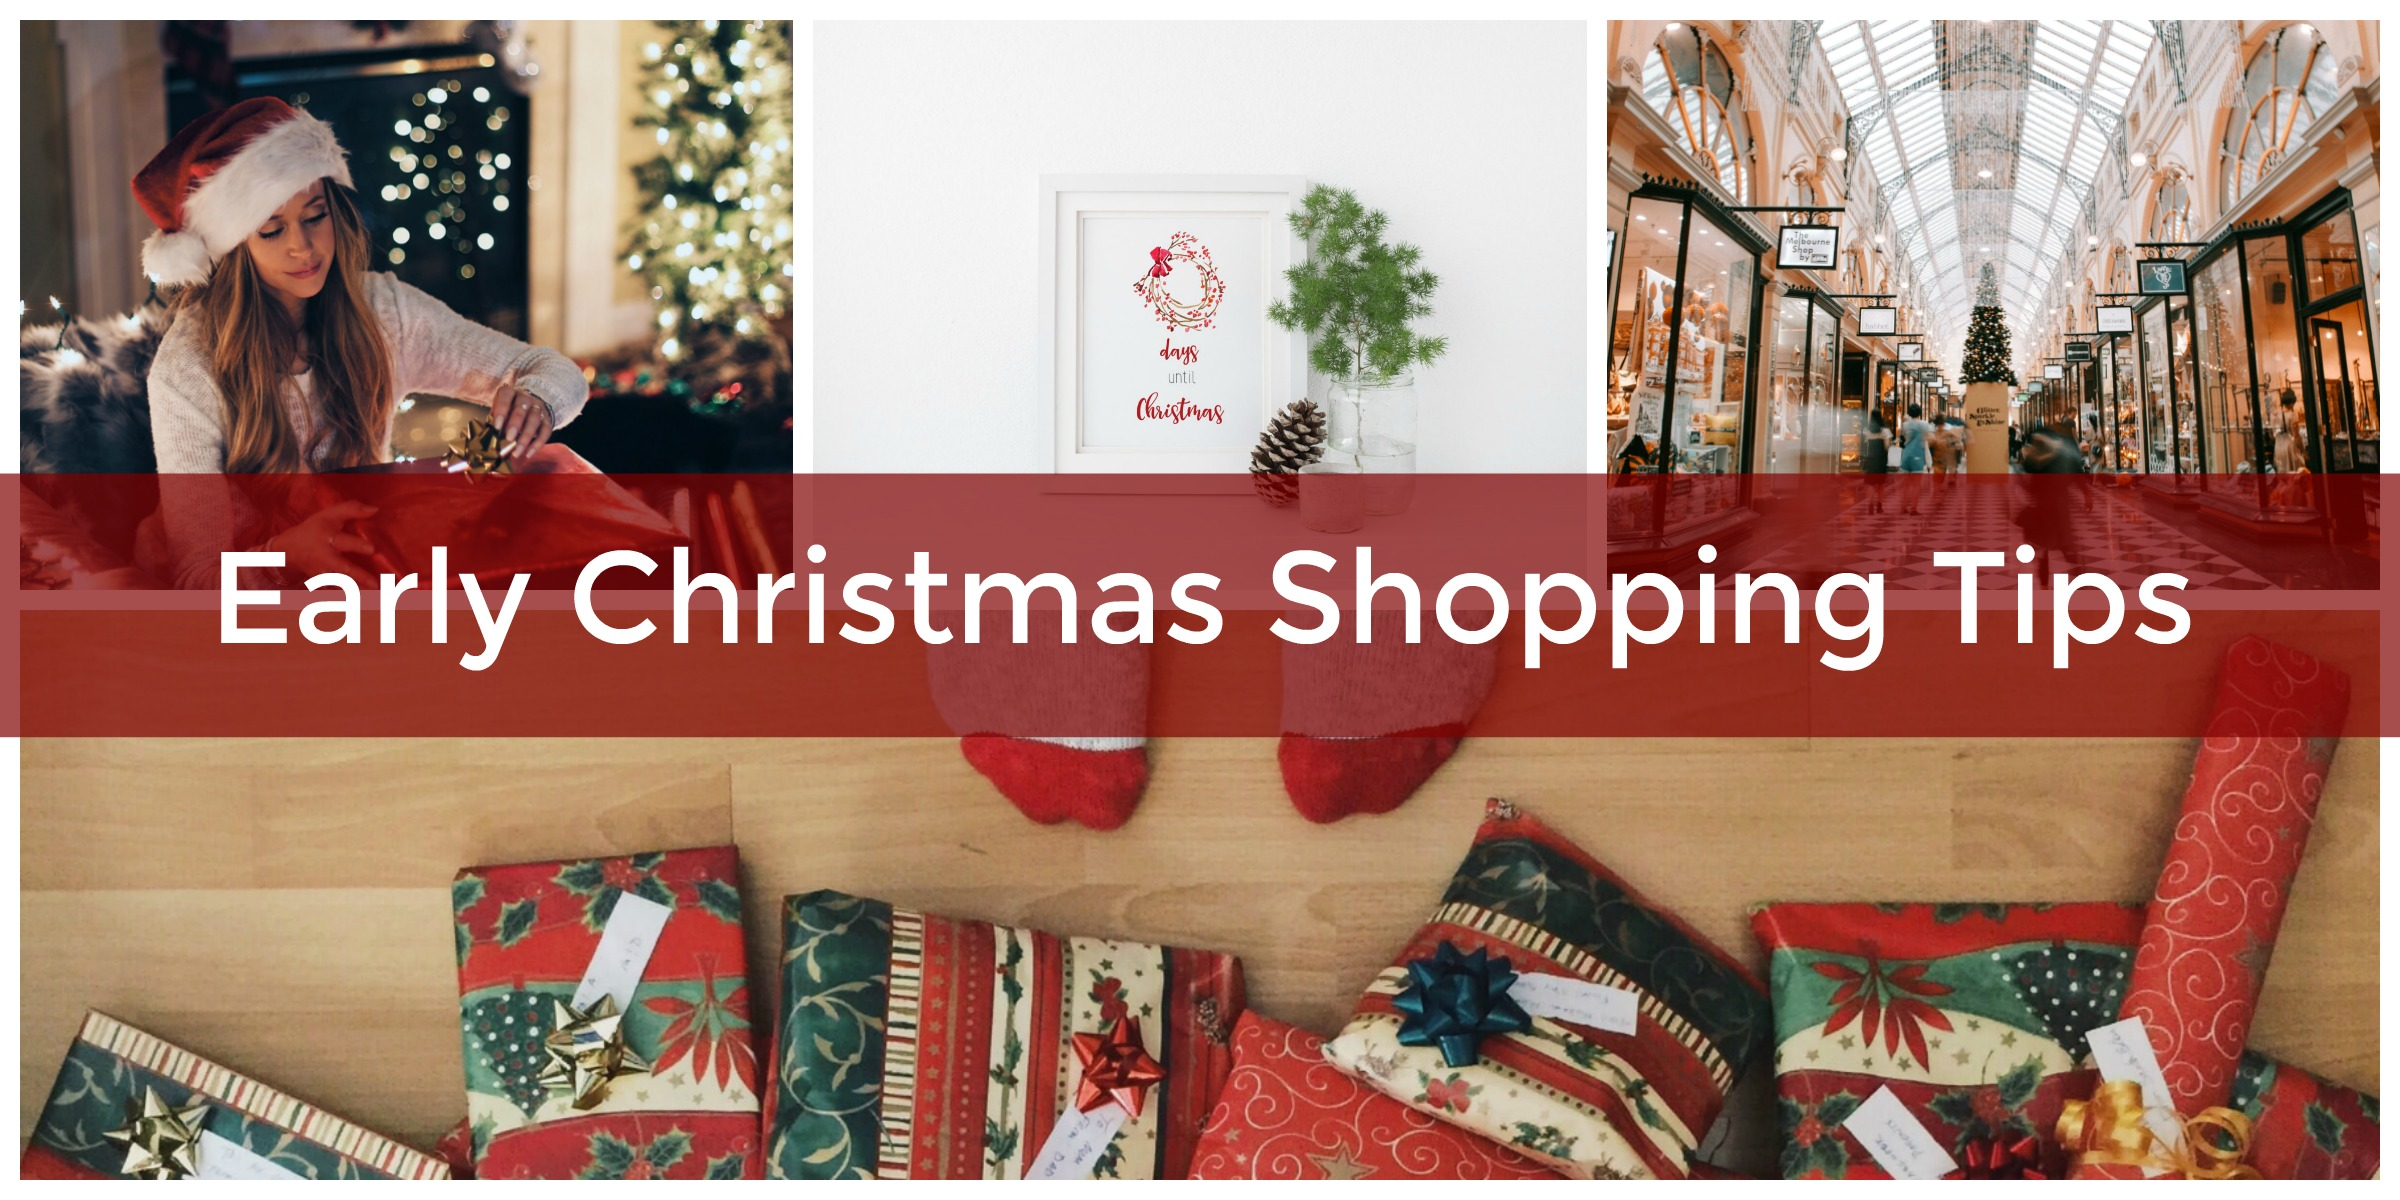 How to Get Your Christmas Shopping Done Early: 5 Easy Tips and ...